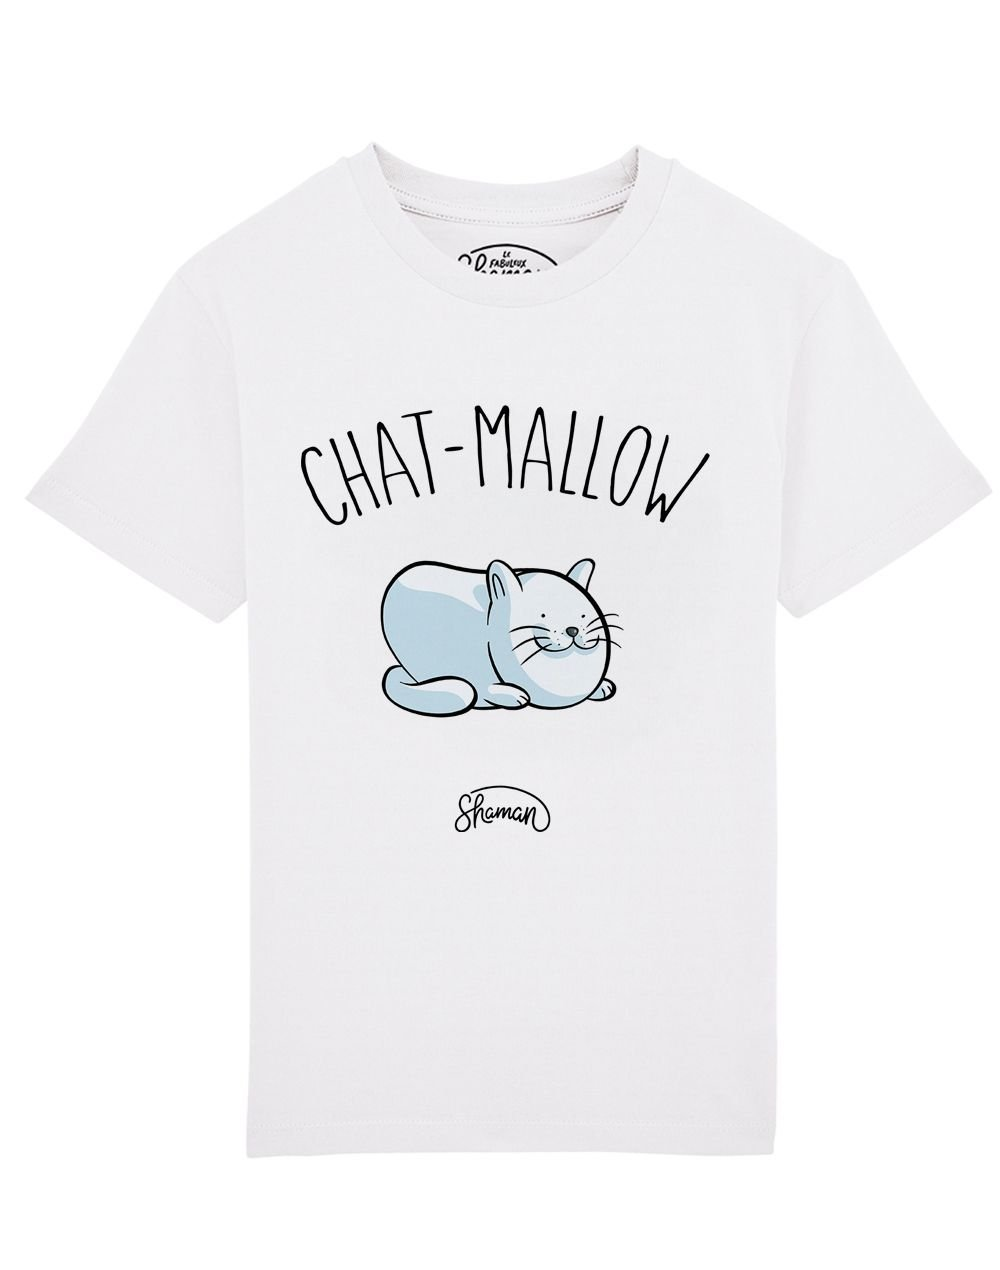 Tee shirt Chat mallow